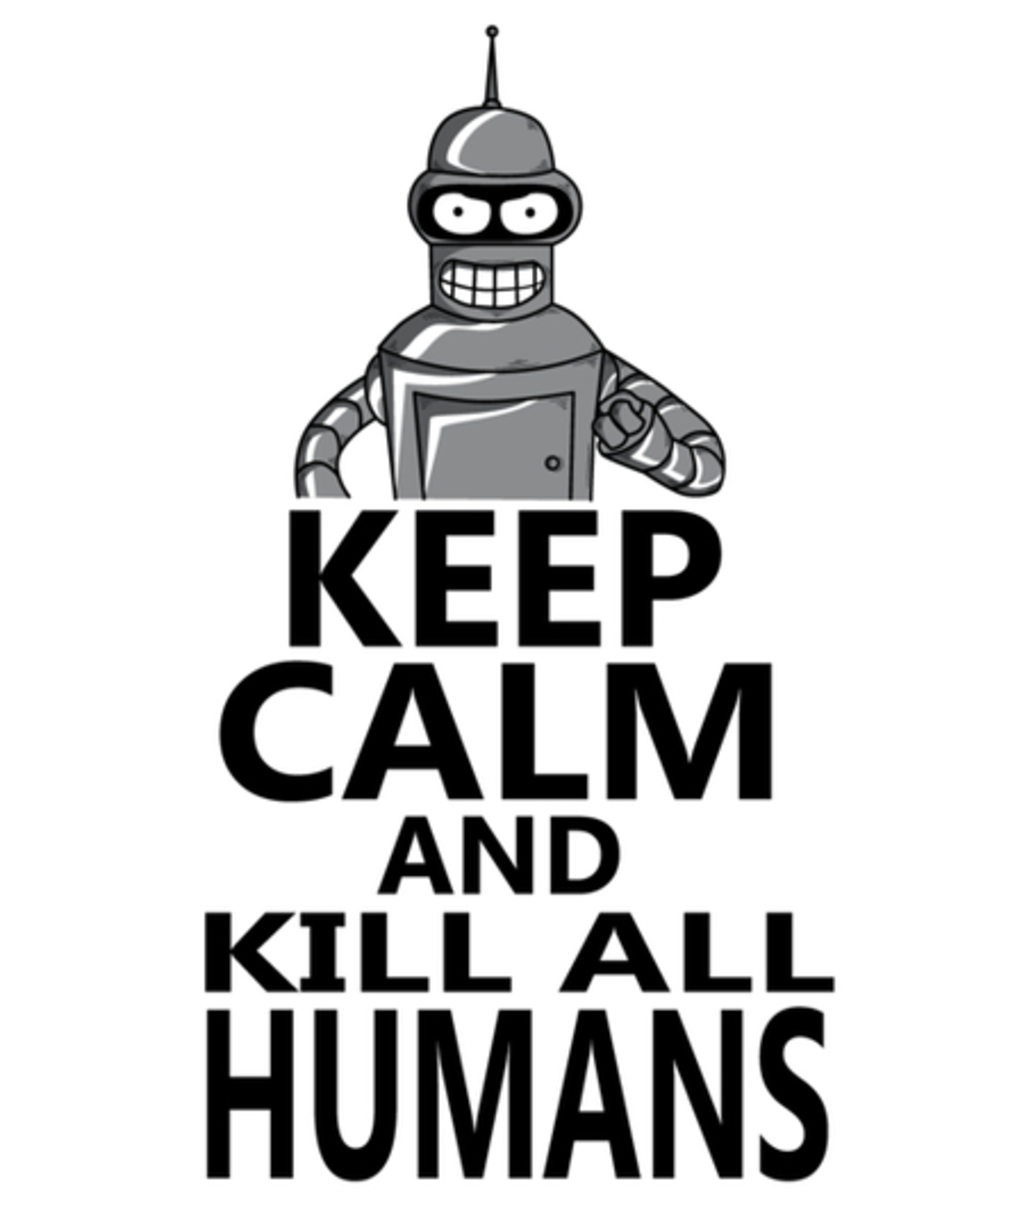 Qwertee: KEEP CALM AND KILL ALL HUMANS